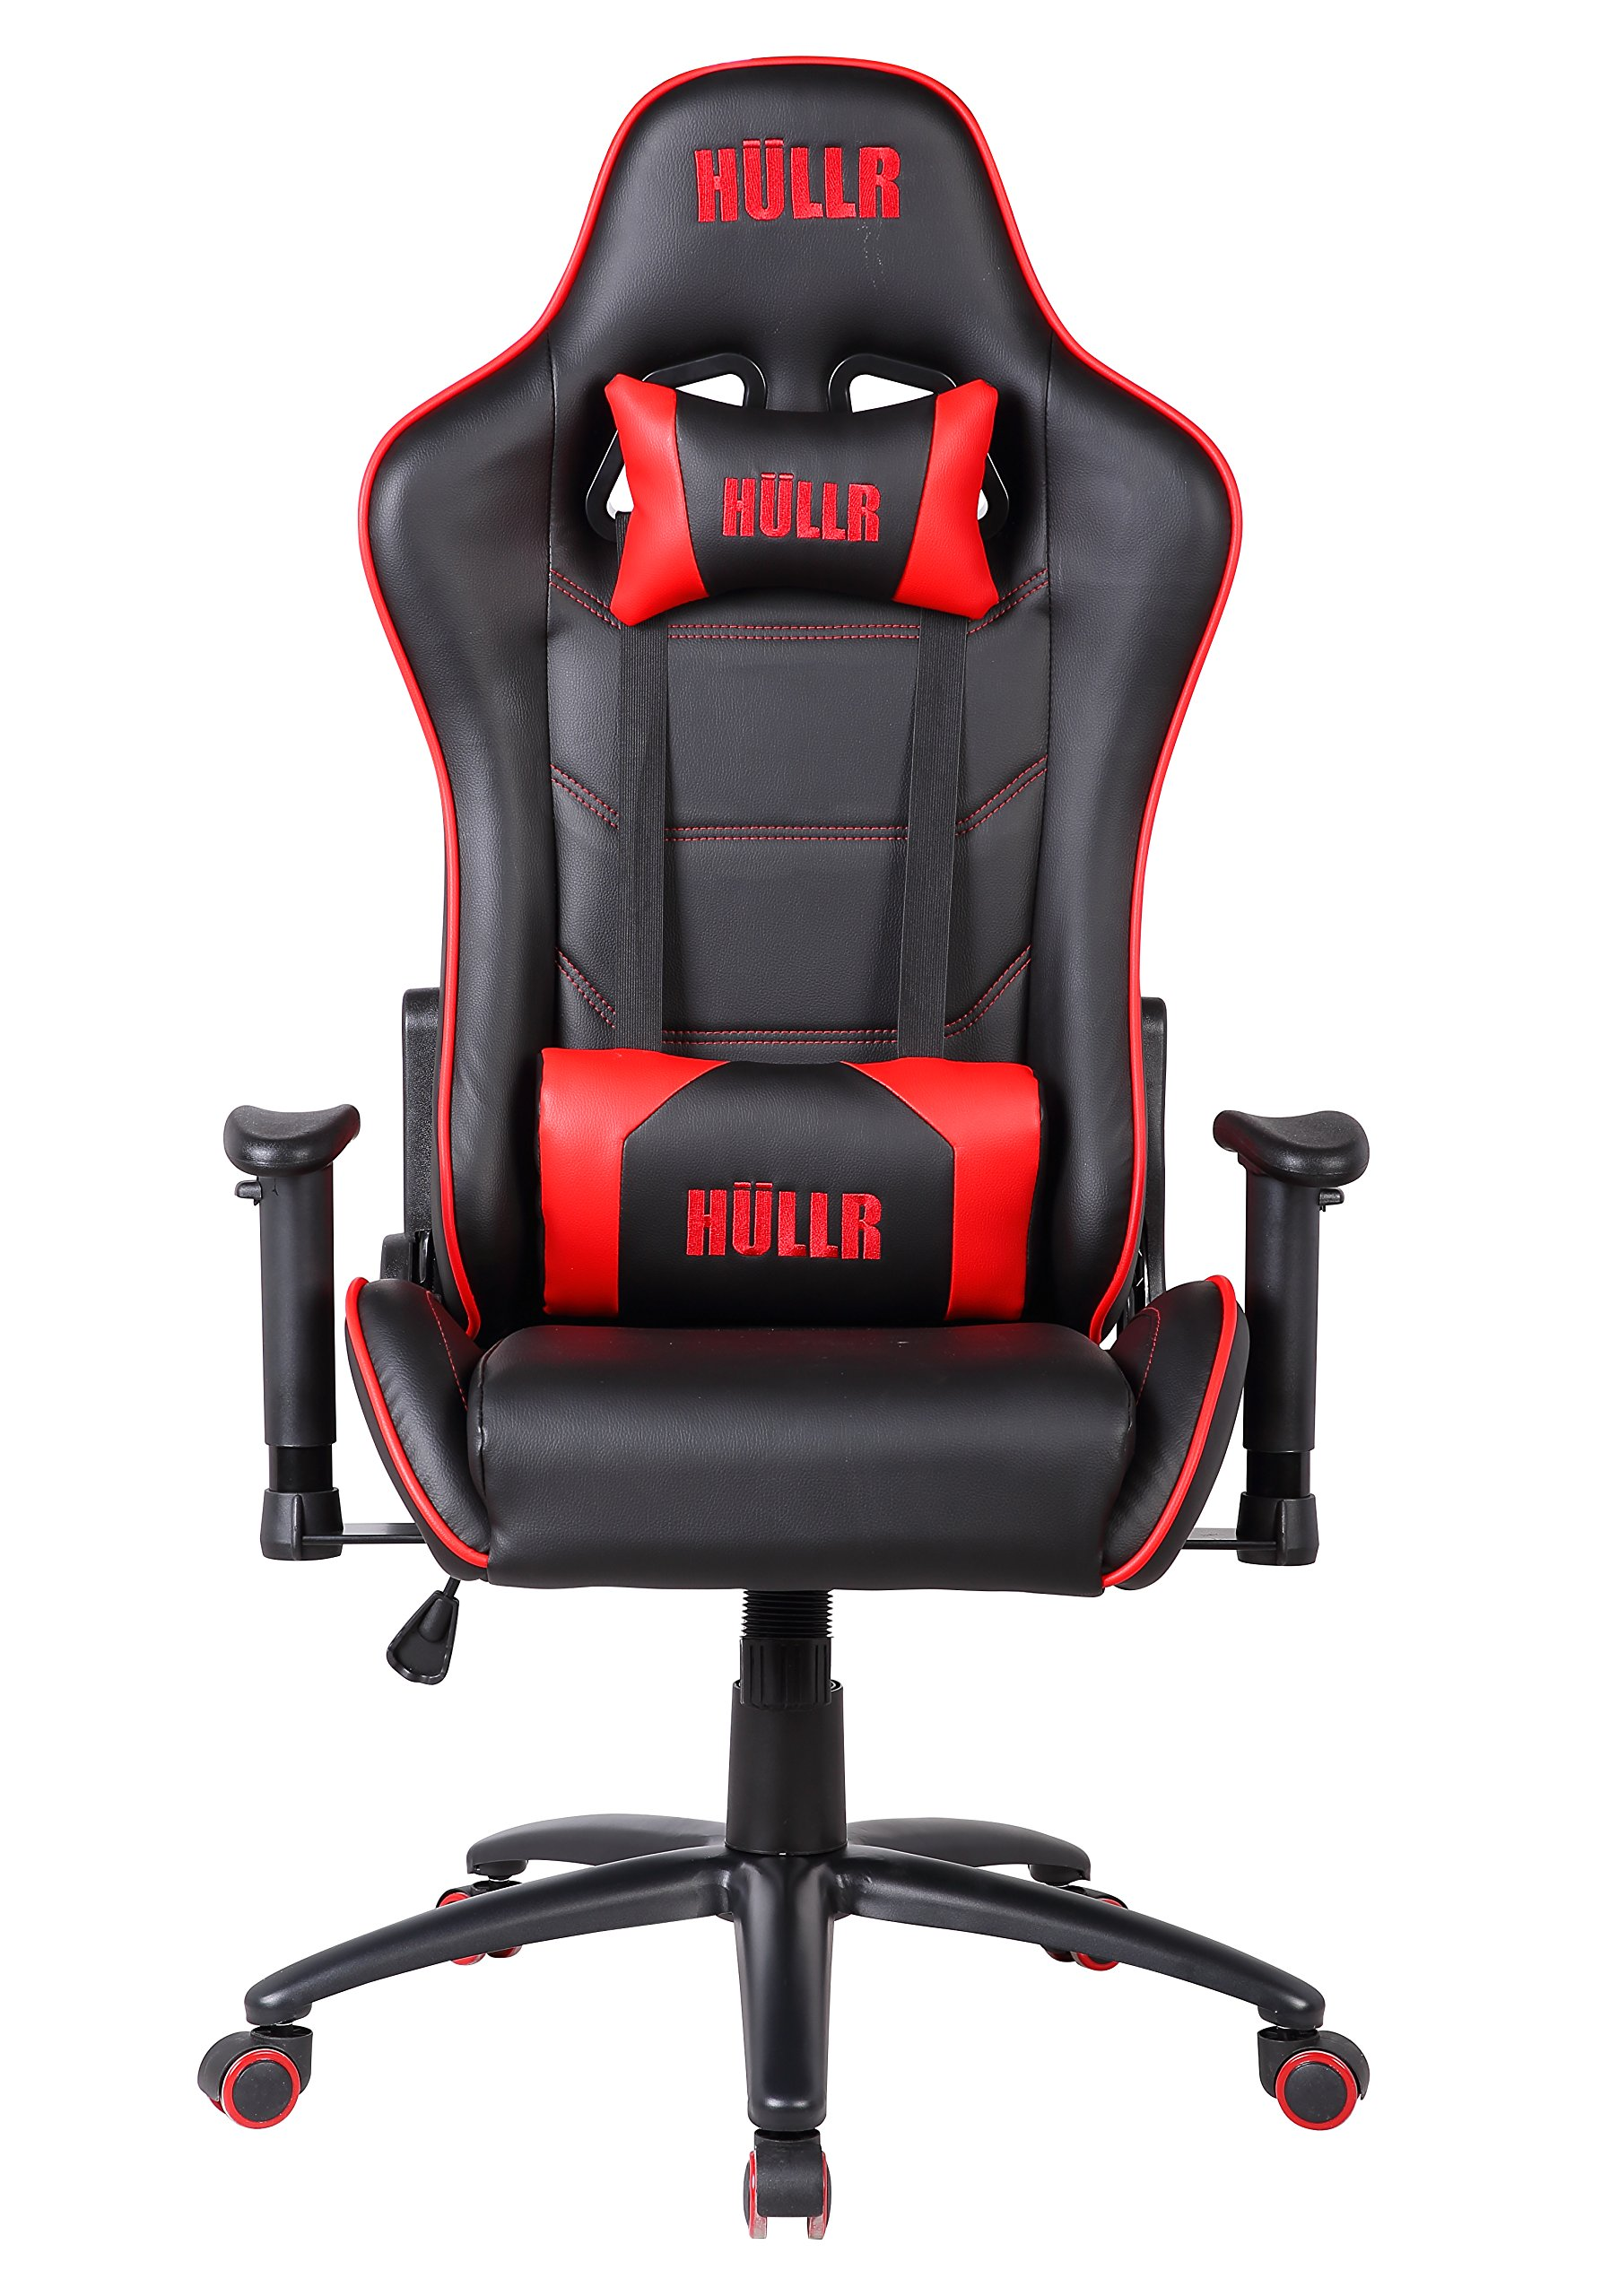 HULLR Gaming Racing Computer Office Chair, Executive High Back GT Ergonomic Reclining Design with Detachable Lumbar Backrest & Headrest (PC PS4 XBOX Laptop) (Black/Red)